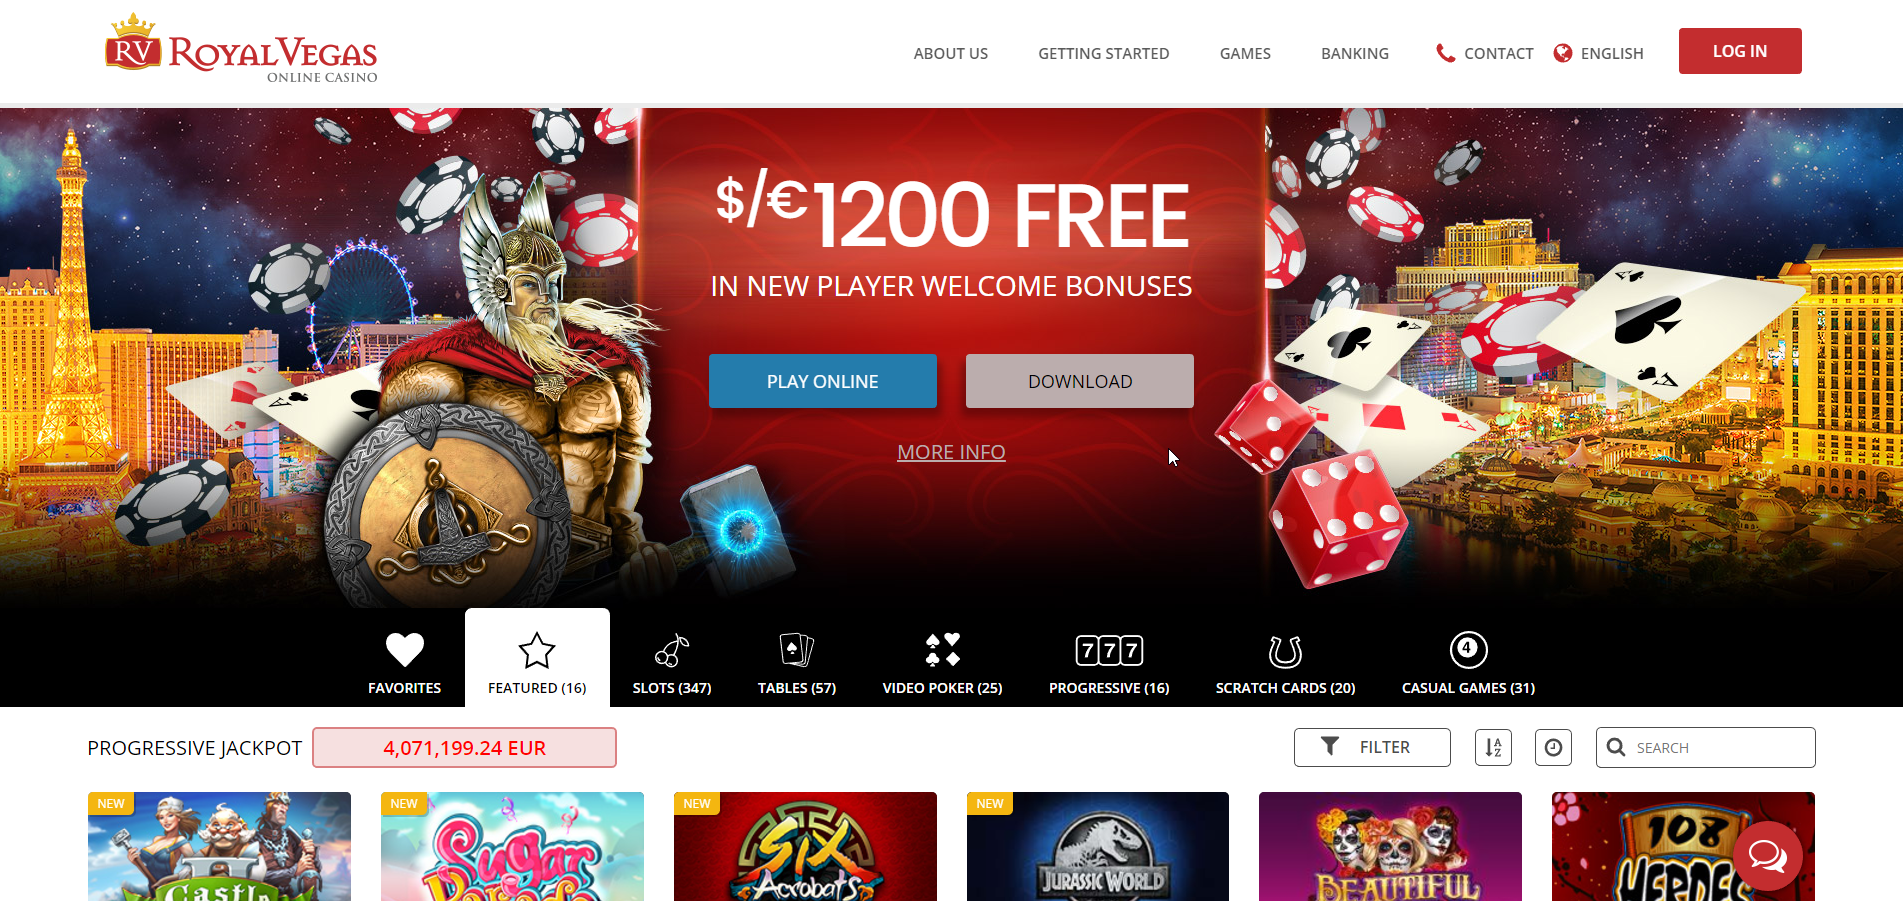 Dash Casino Online Review With Promotions & Bonuses